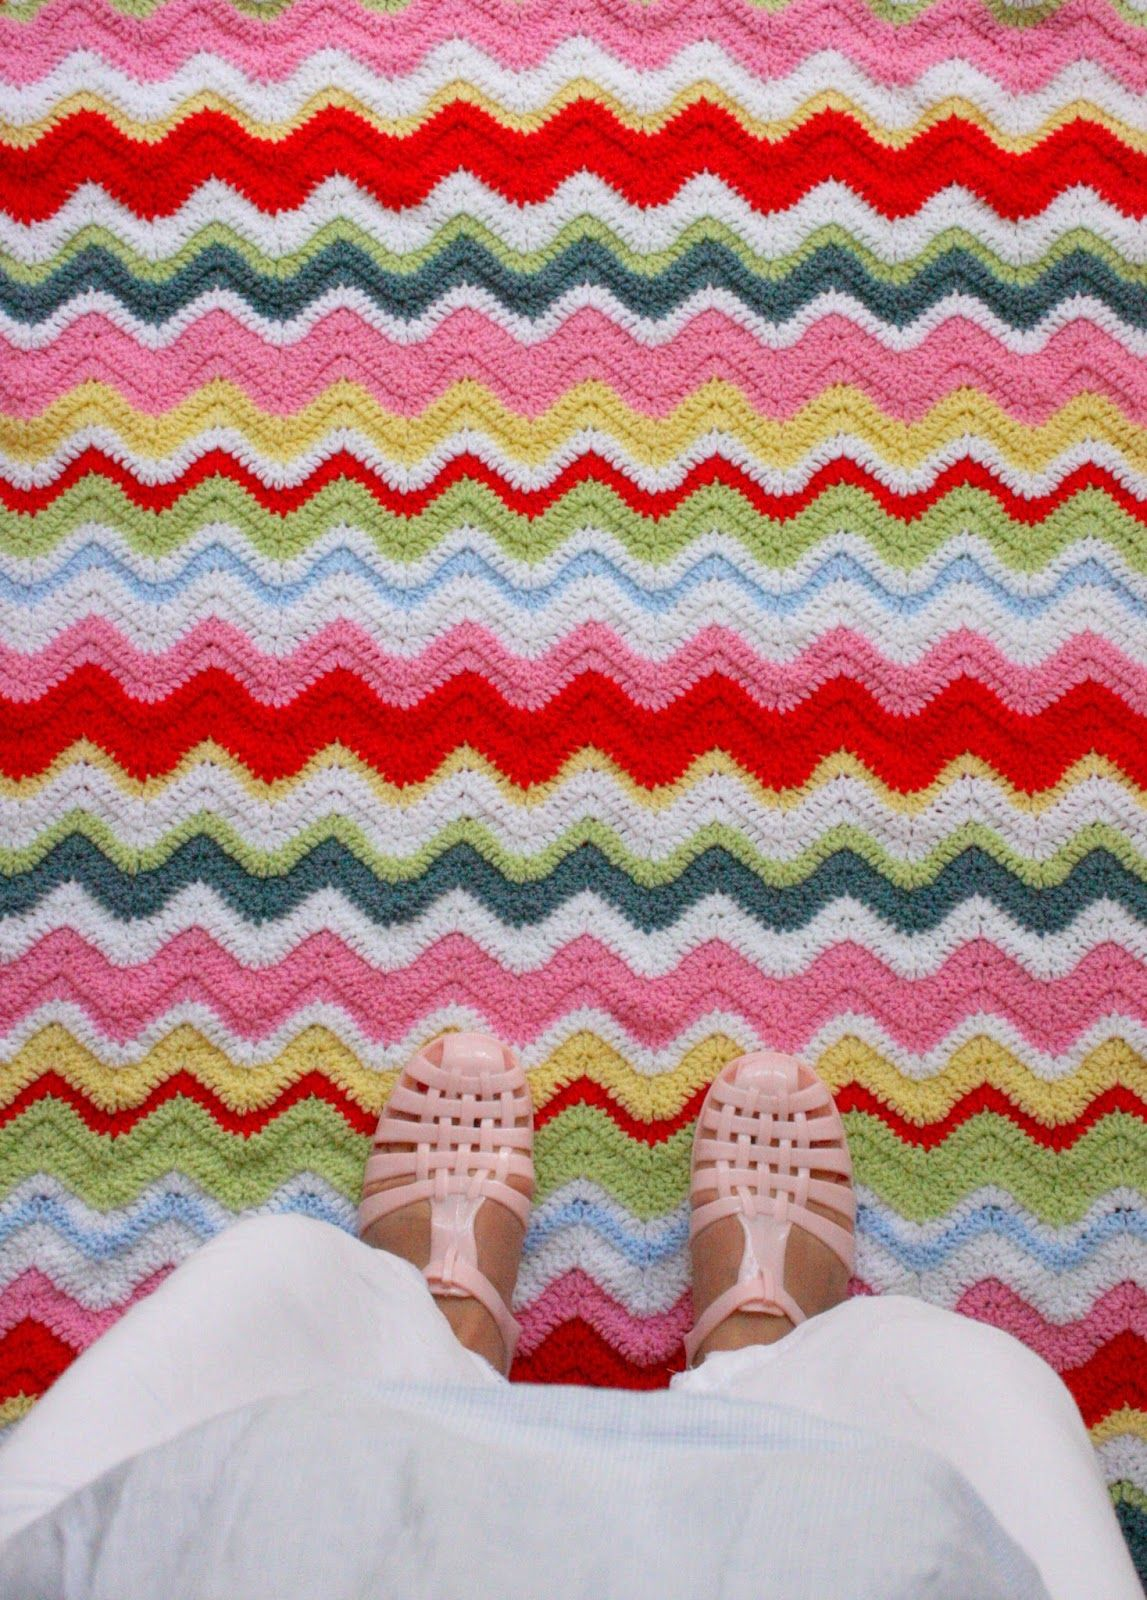 Beautiful colorful #crochet ripple blanket from Coco Rose Diaries ...